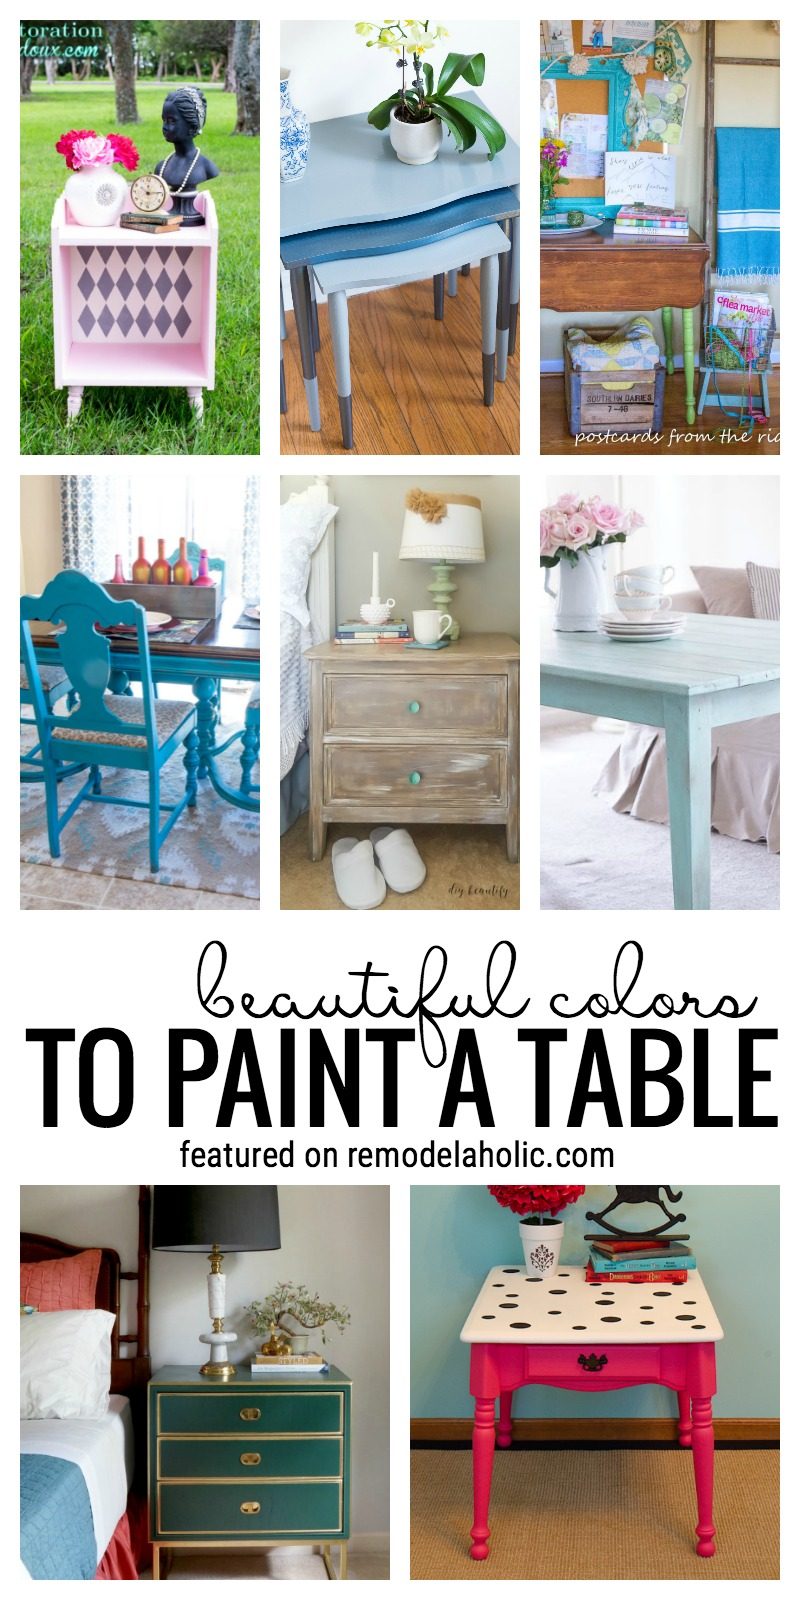 beautiful colors to paint a table